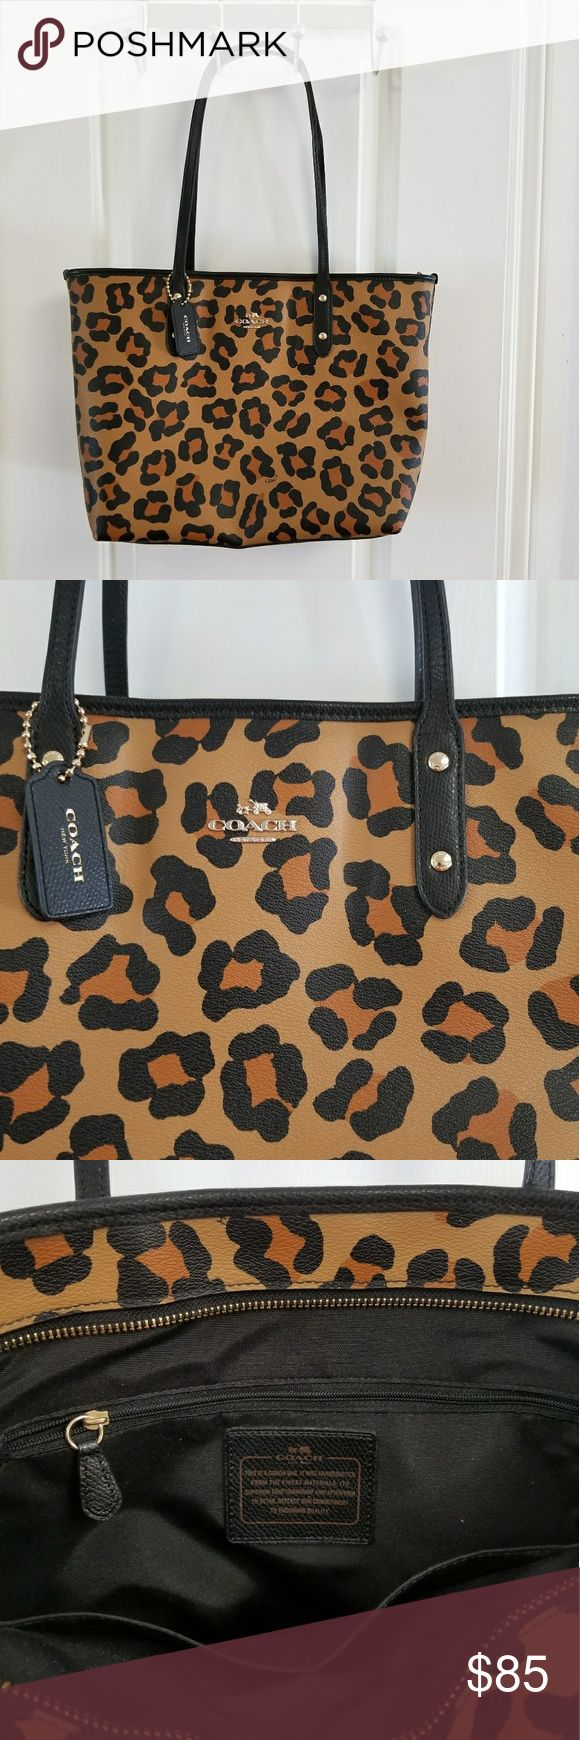 Coach leopard purse Coach leopard purse, medium to large shoulder bag. Black strap and coach tag. Embellished with coach logo in gold. Inside has 2 open seemed pockets, one zipper pocket, and gold zipper along entire inner top seam for security. New, never used, but missing tag. Coach Bags Shoulder Bags